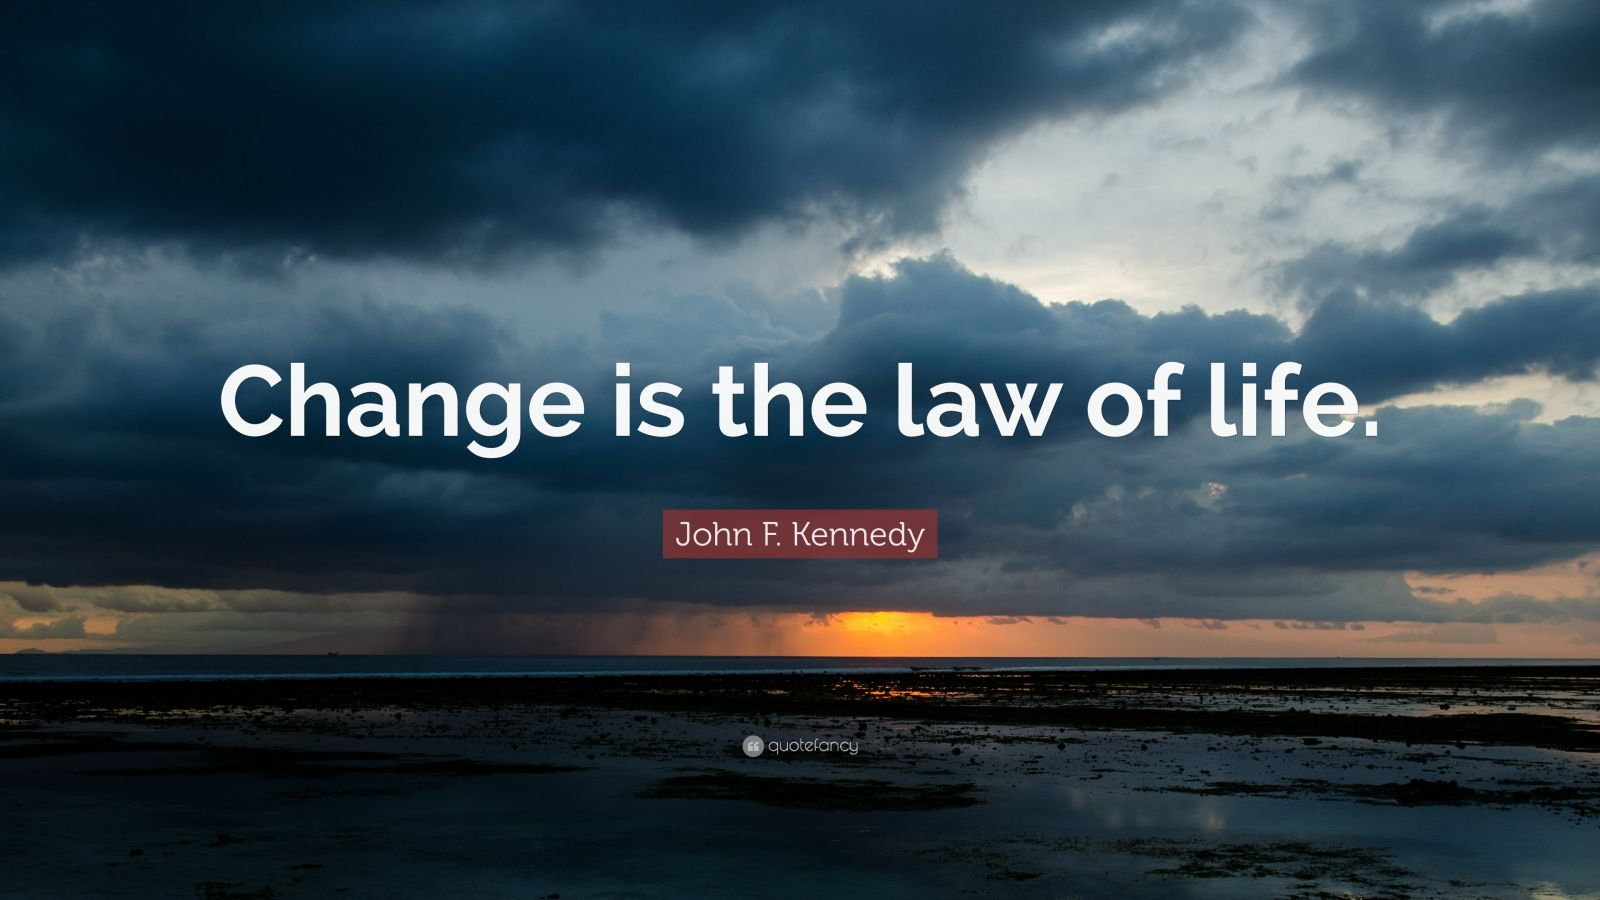 the law of life A physicist has proposed the provocative idea that life exists because the law of  increasing entropy drives matter to acquire life-like physical.